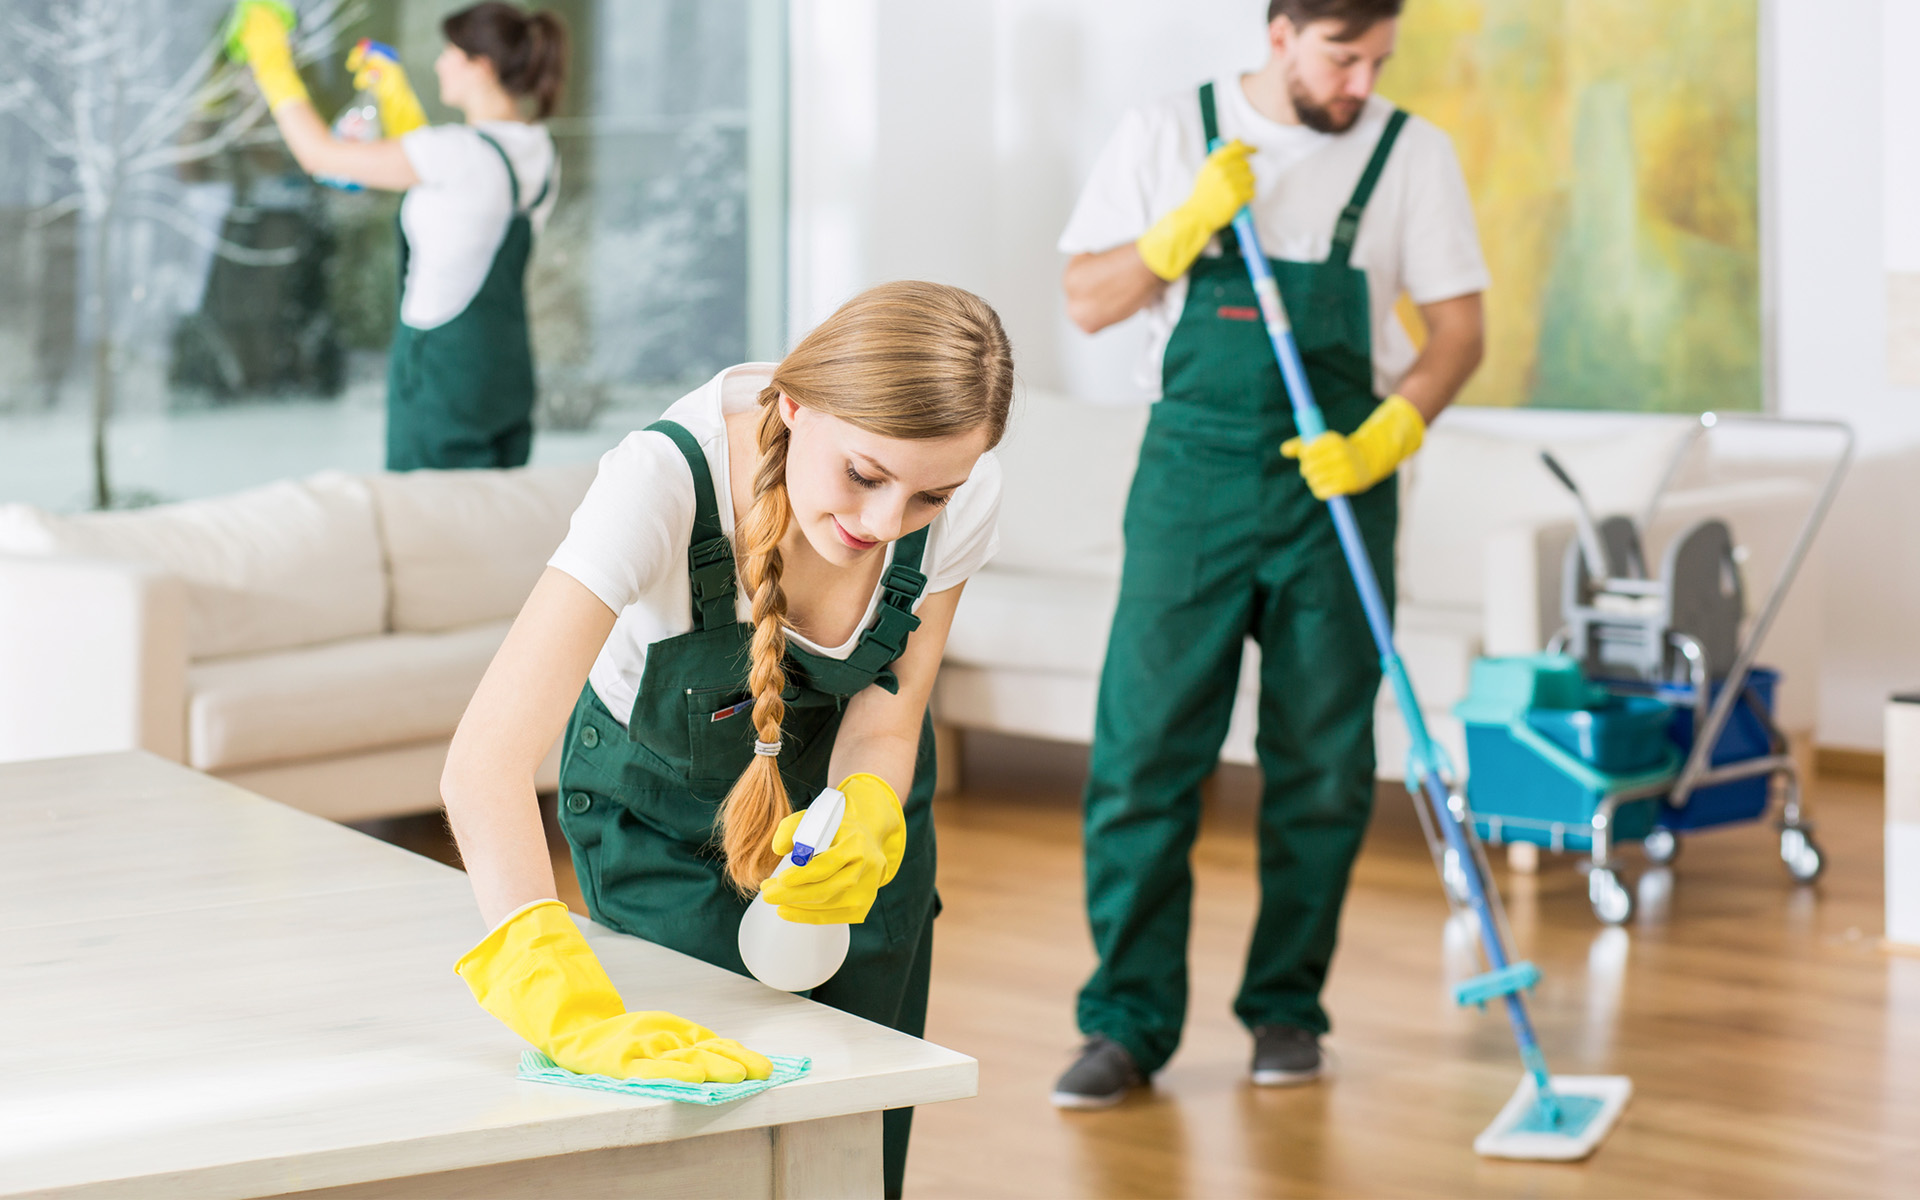 EUROPEAN CLEANING  -  IMPRESA DI PULIZIE